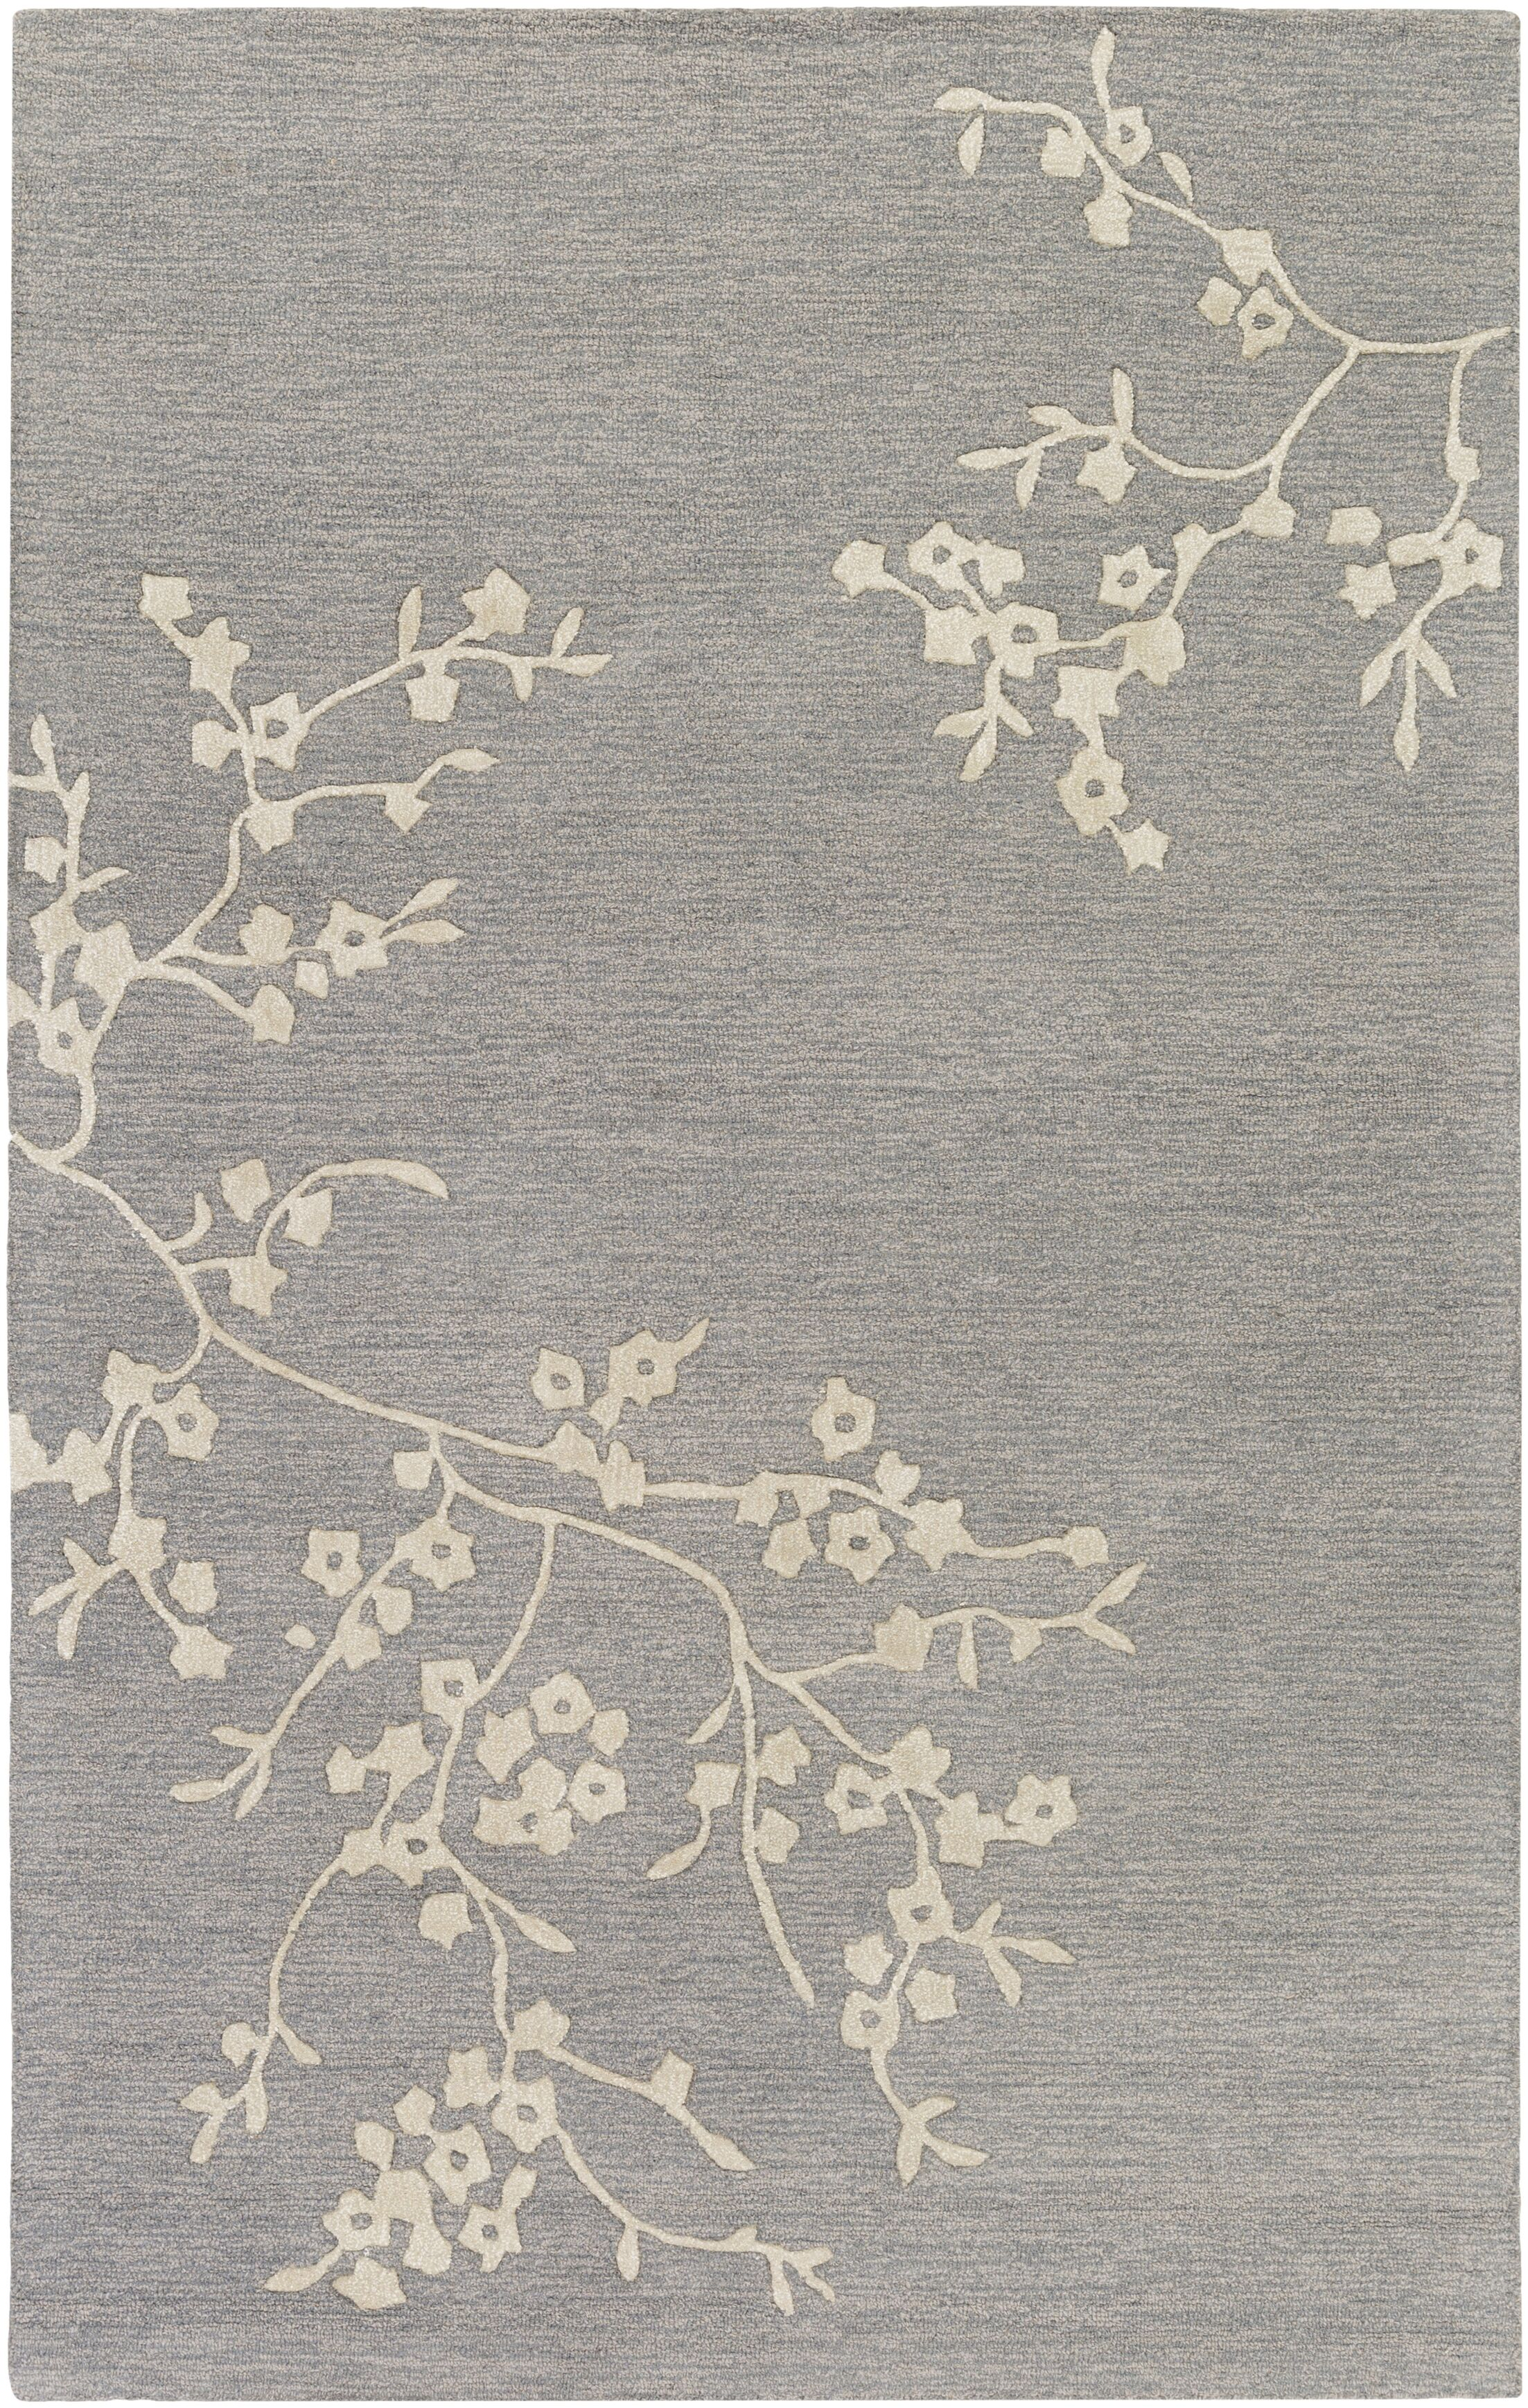 Kerney Hand-tufted Gray/Beige Area Rug Rug Size: Rectangle 5' x 8'